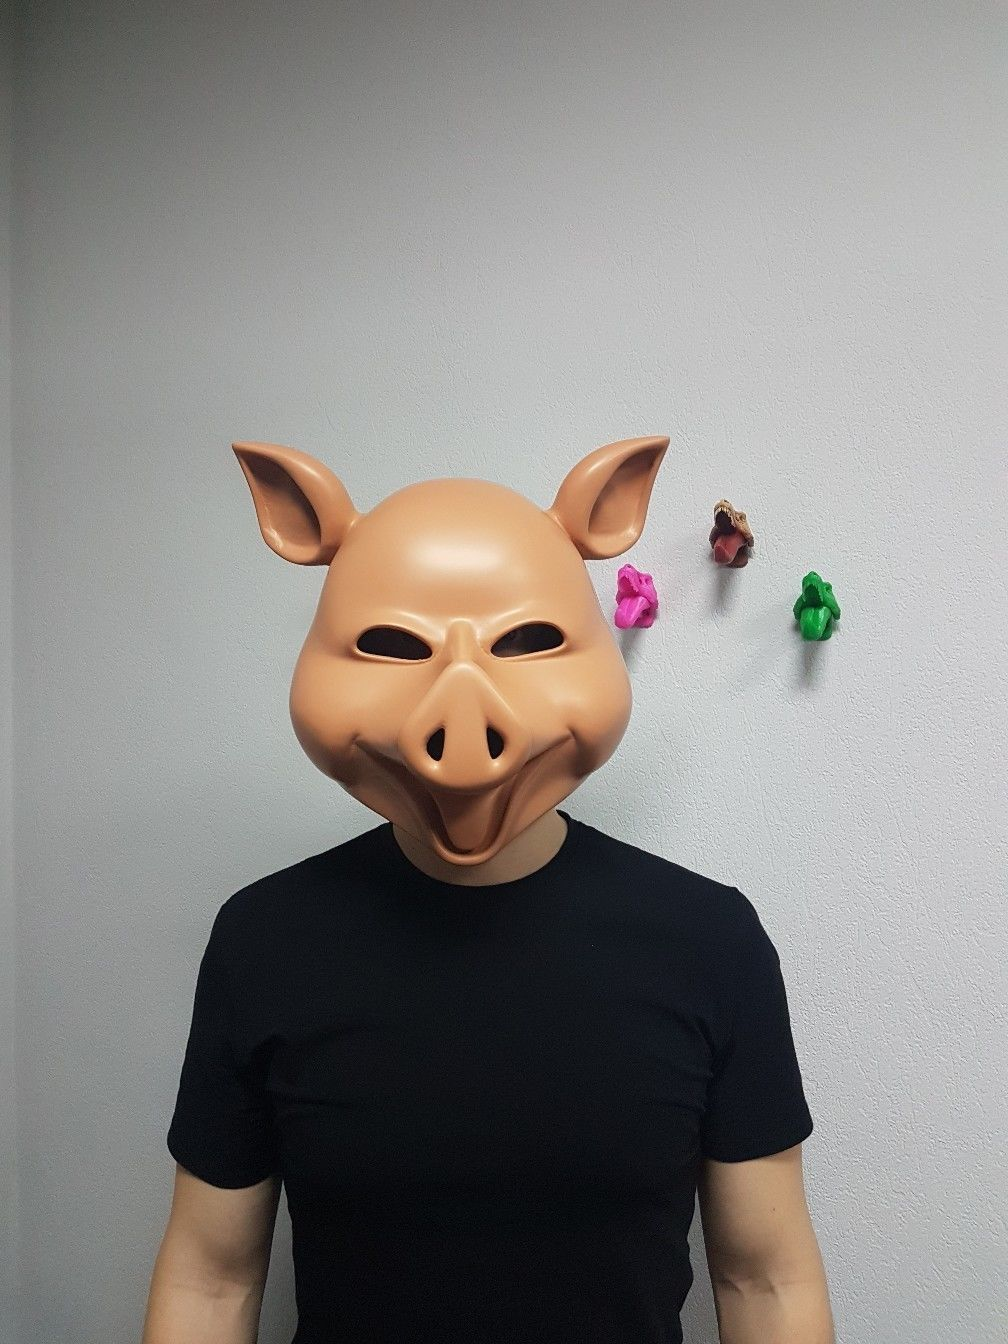 graphic relating to Printable Pig Mask identify Pig mask Snowboard mask Horror mask The Purge mask 3D Print Design